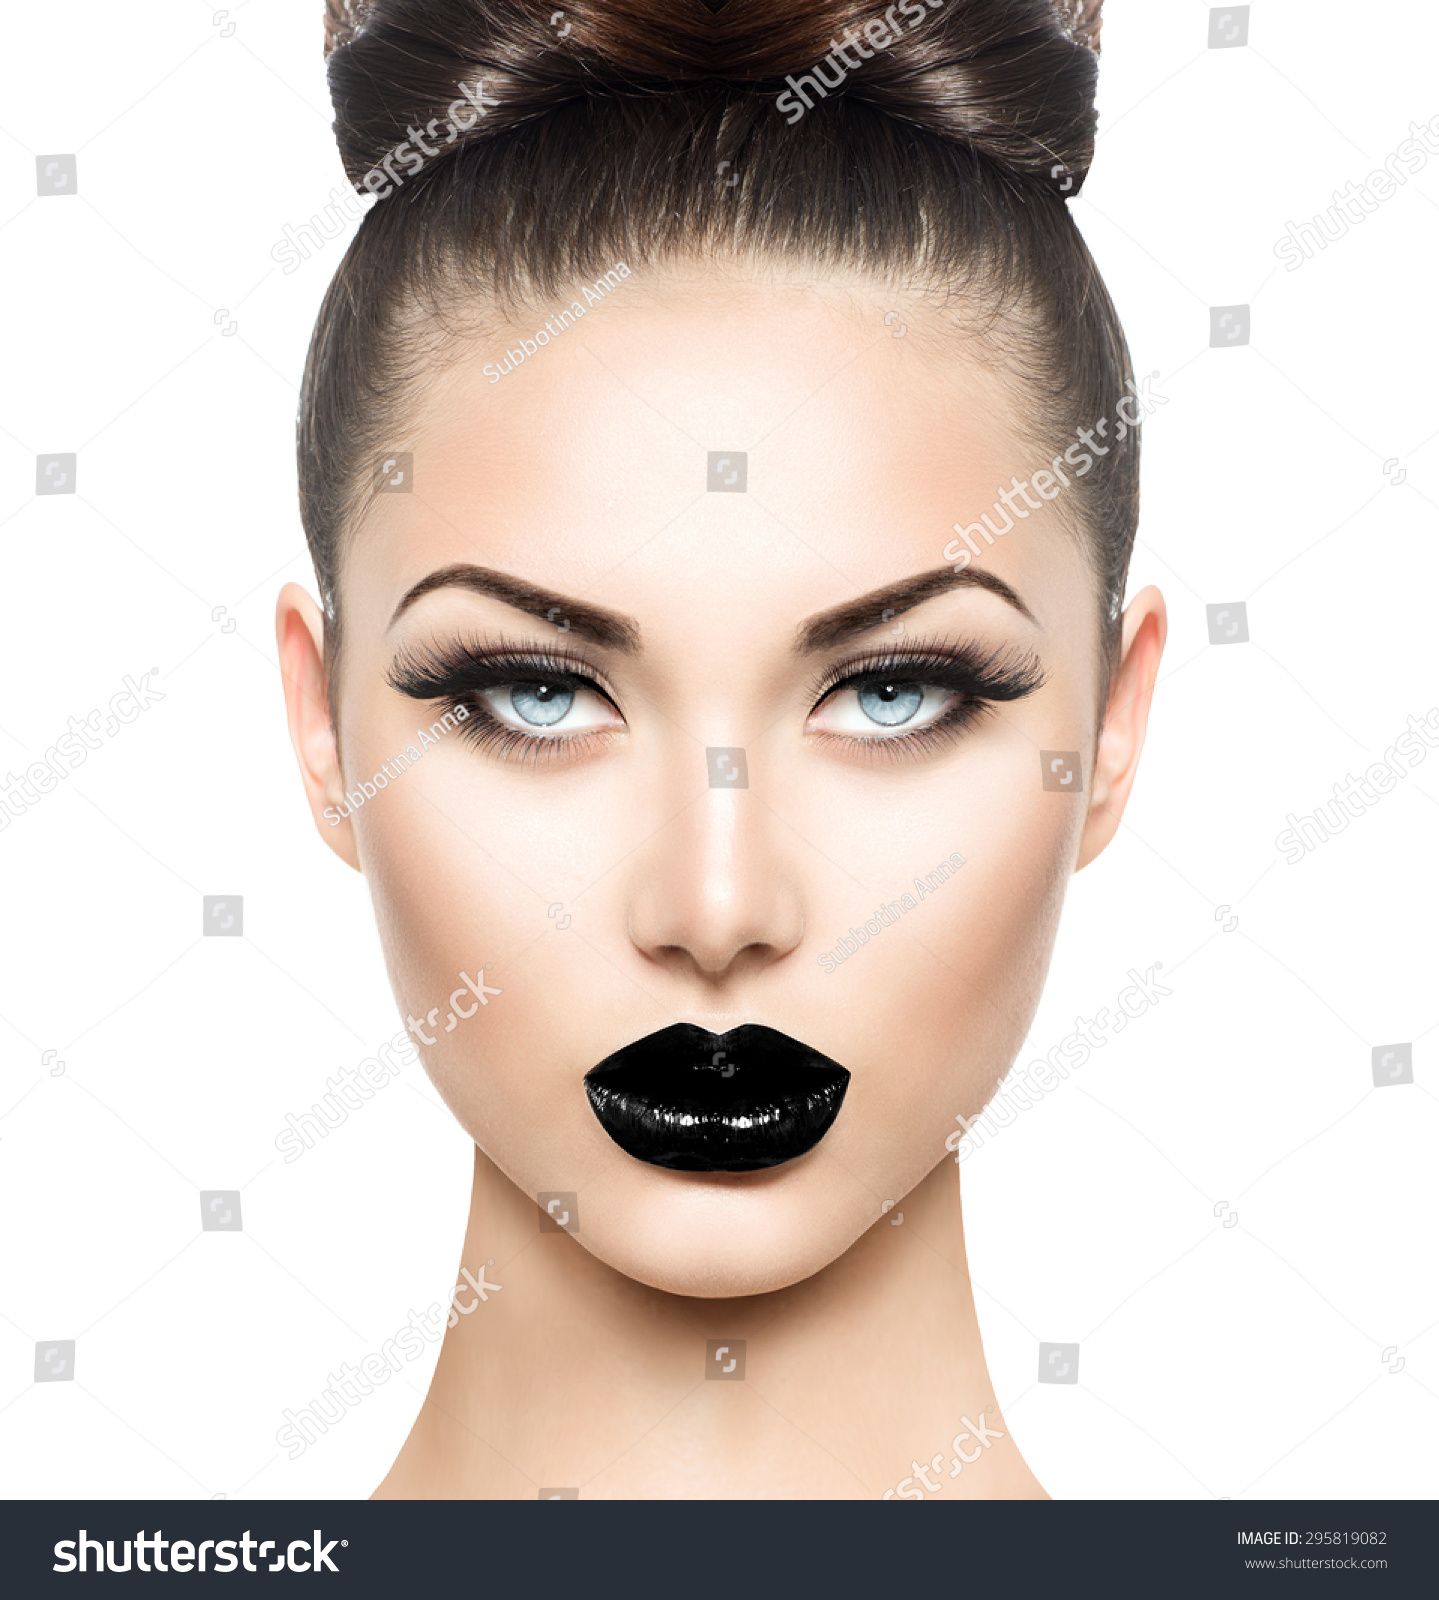 Dark Lipstick Wedding Makeup : High Fashion Beauty Model Girl With Black Make Up And Long ...